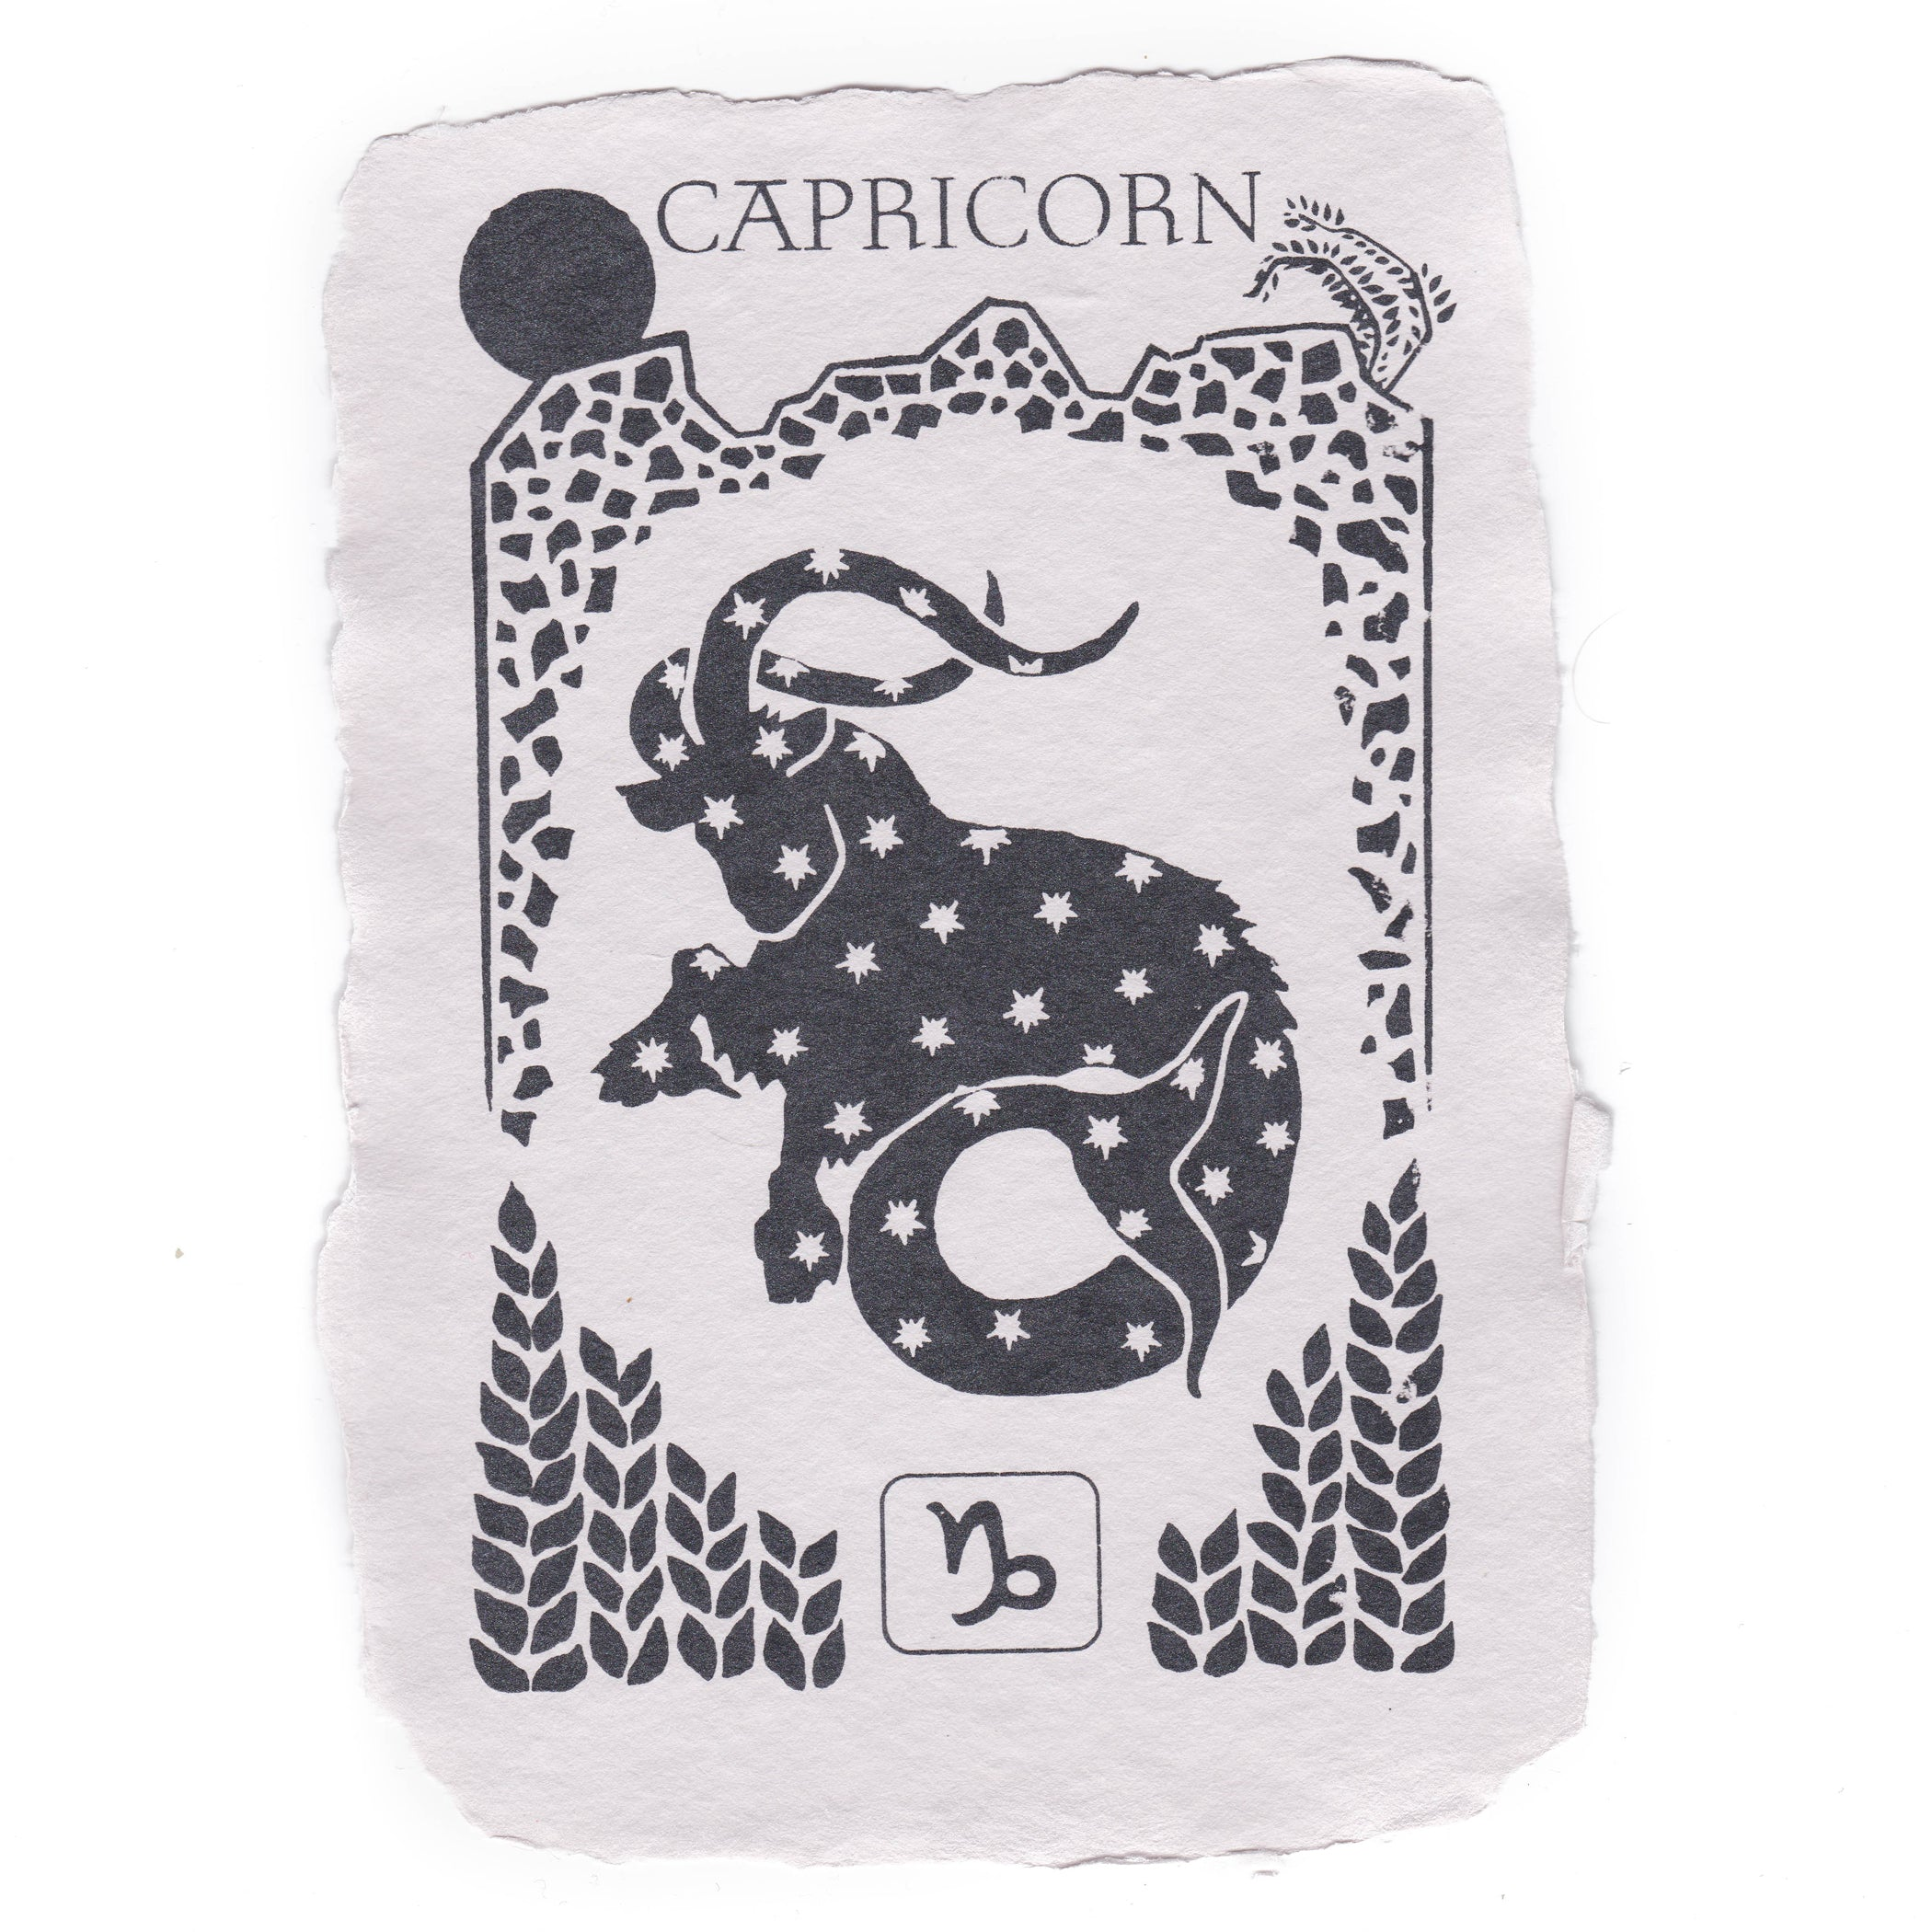 Capricorn Notecard